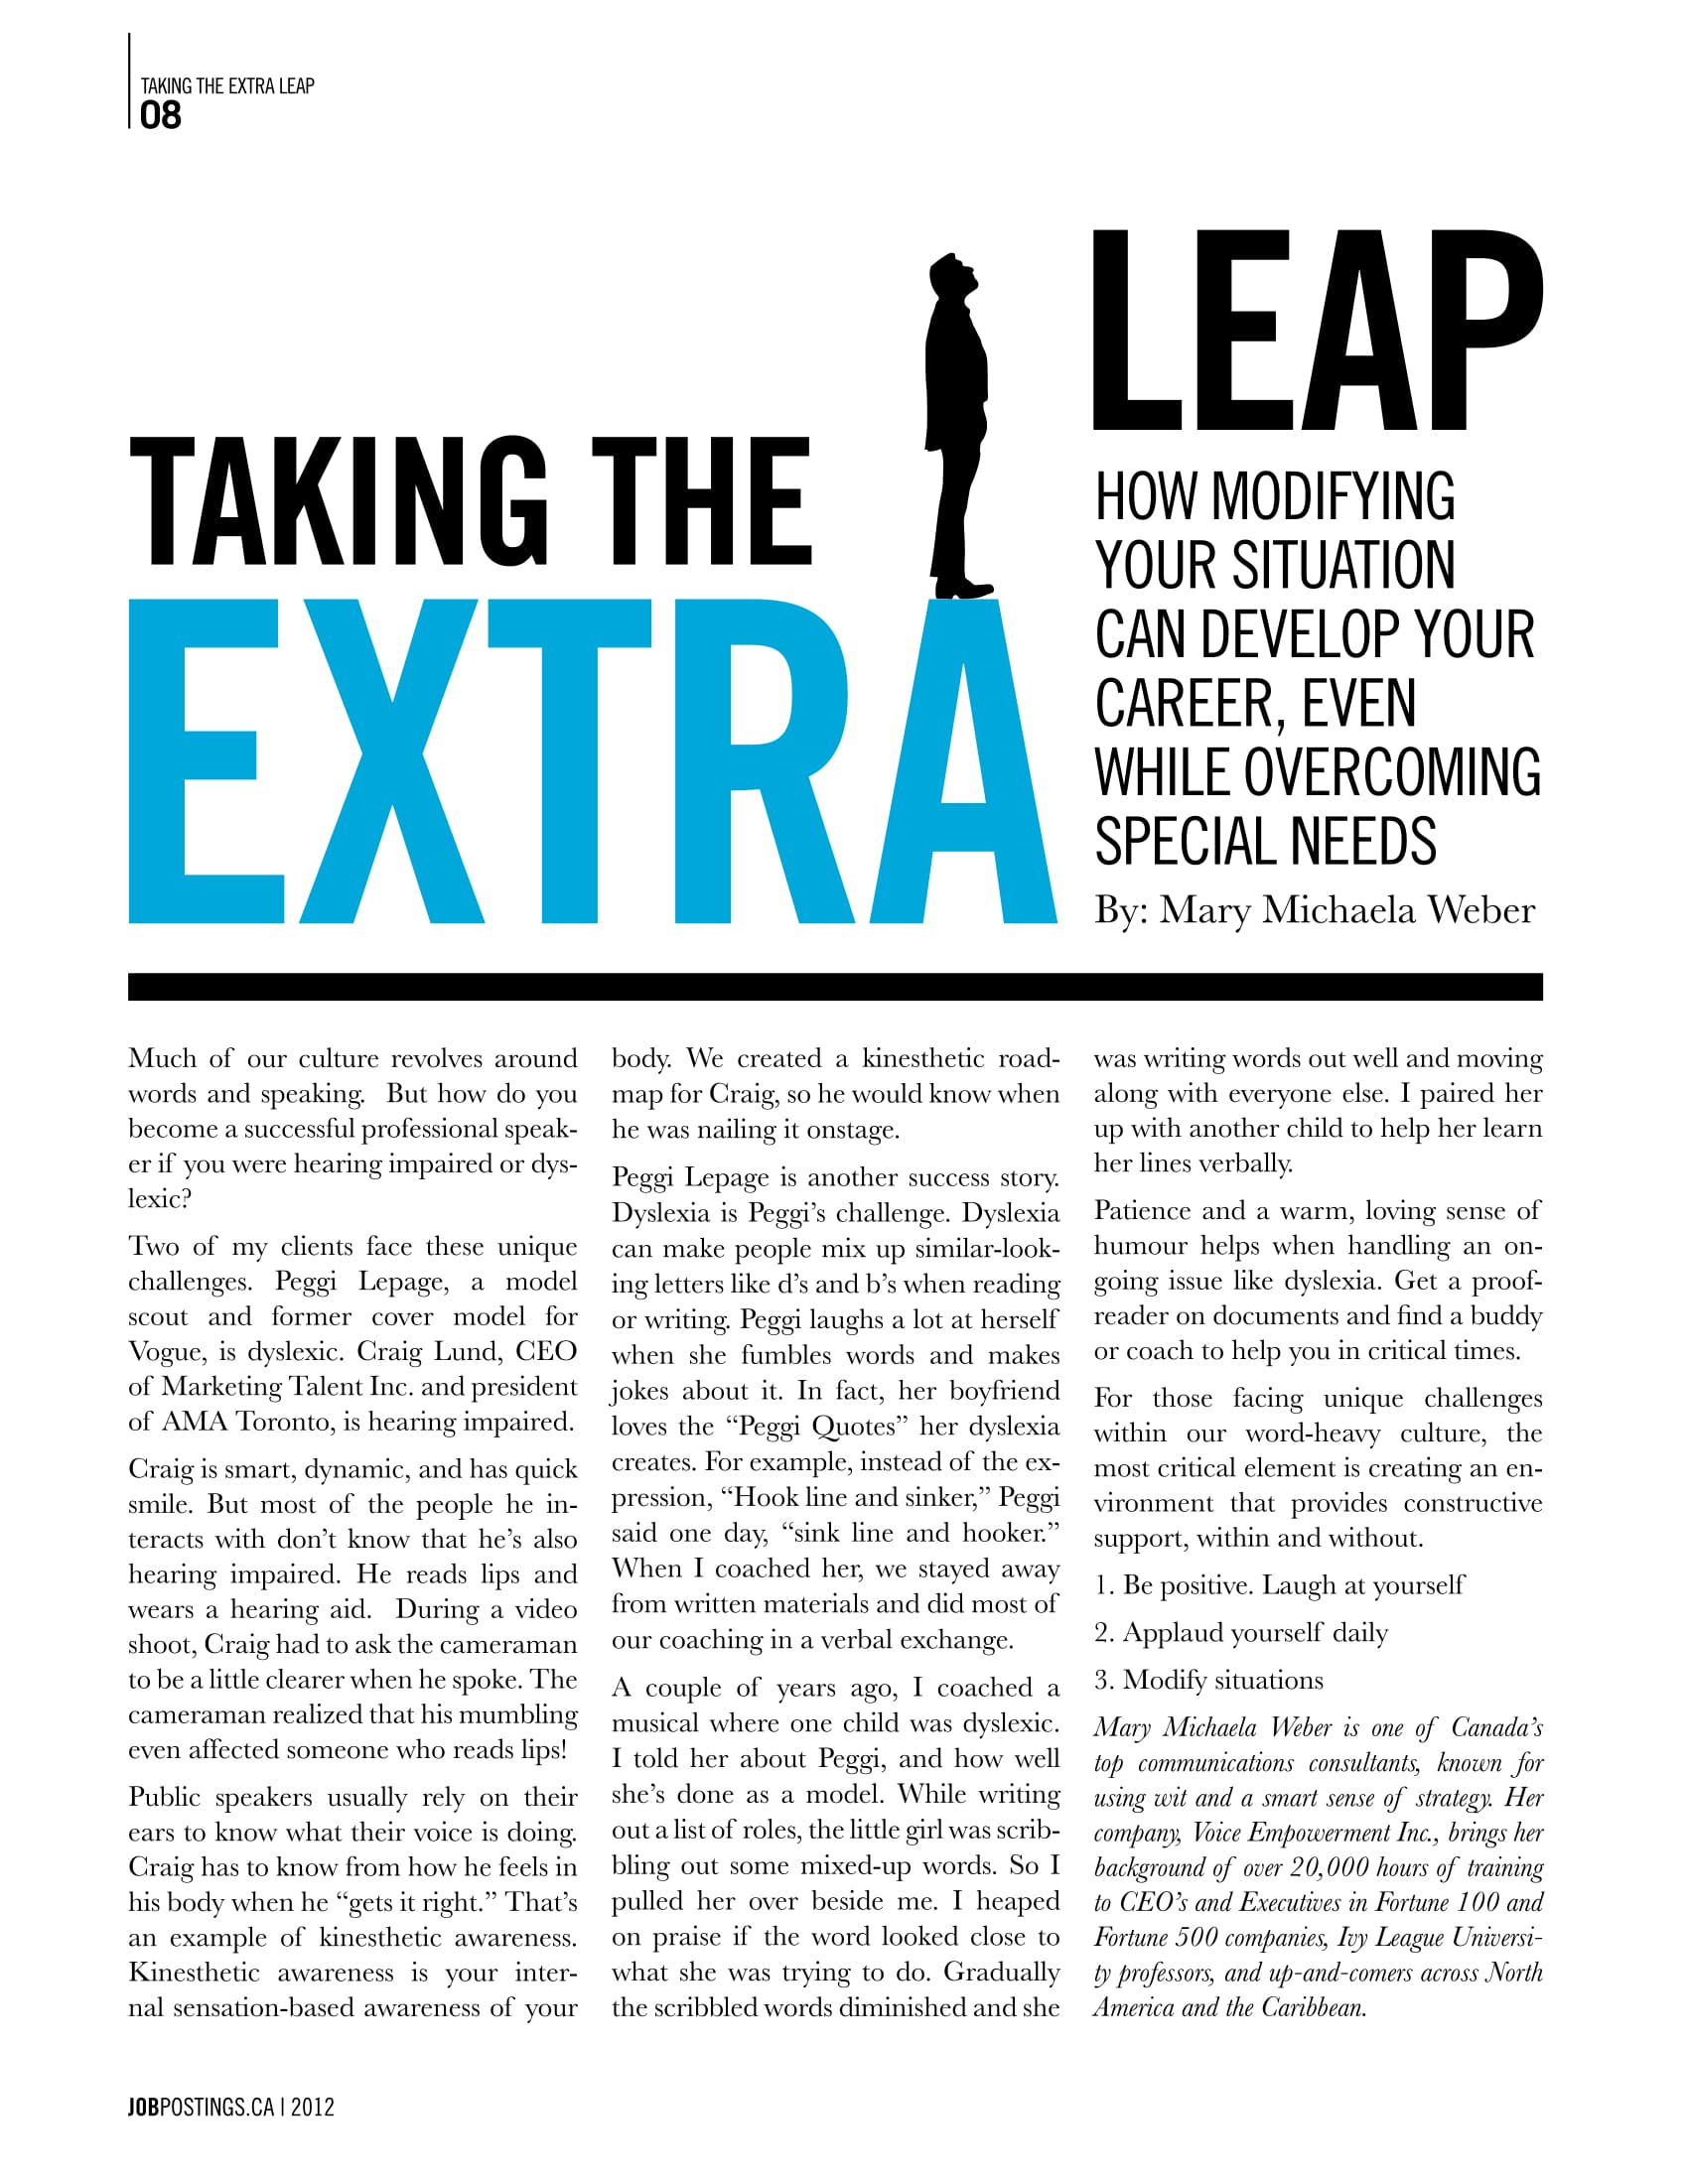 Taking the Extra Leap - Page 8, (Dis)Ability Issue, 2012How modifying your situation can develop your career, even while overcoming special needs.